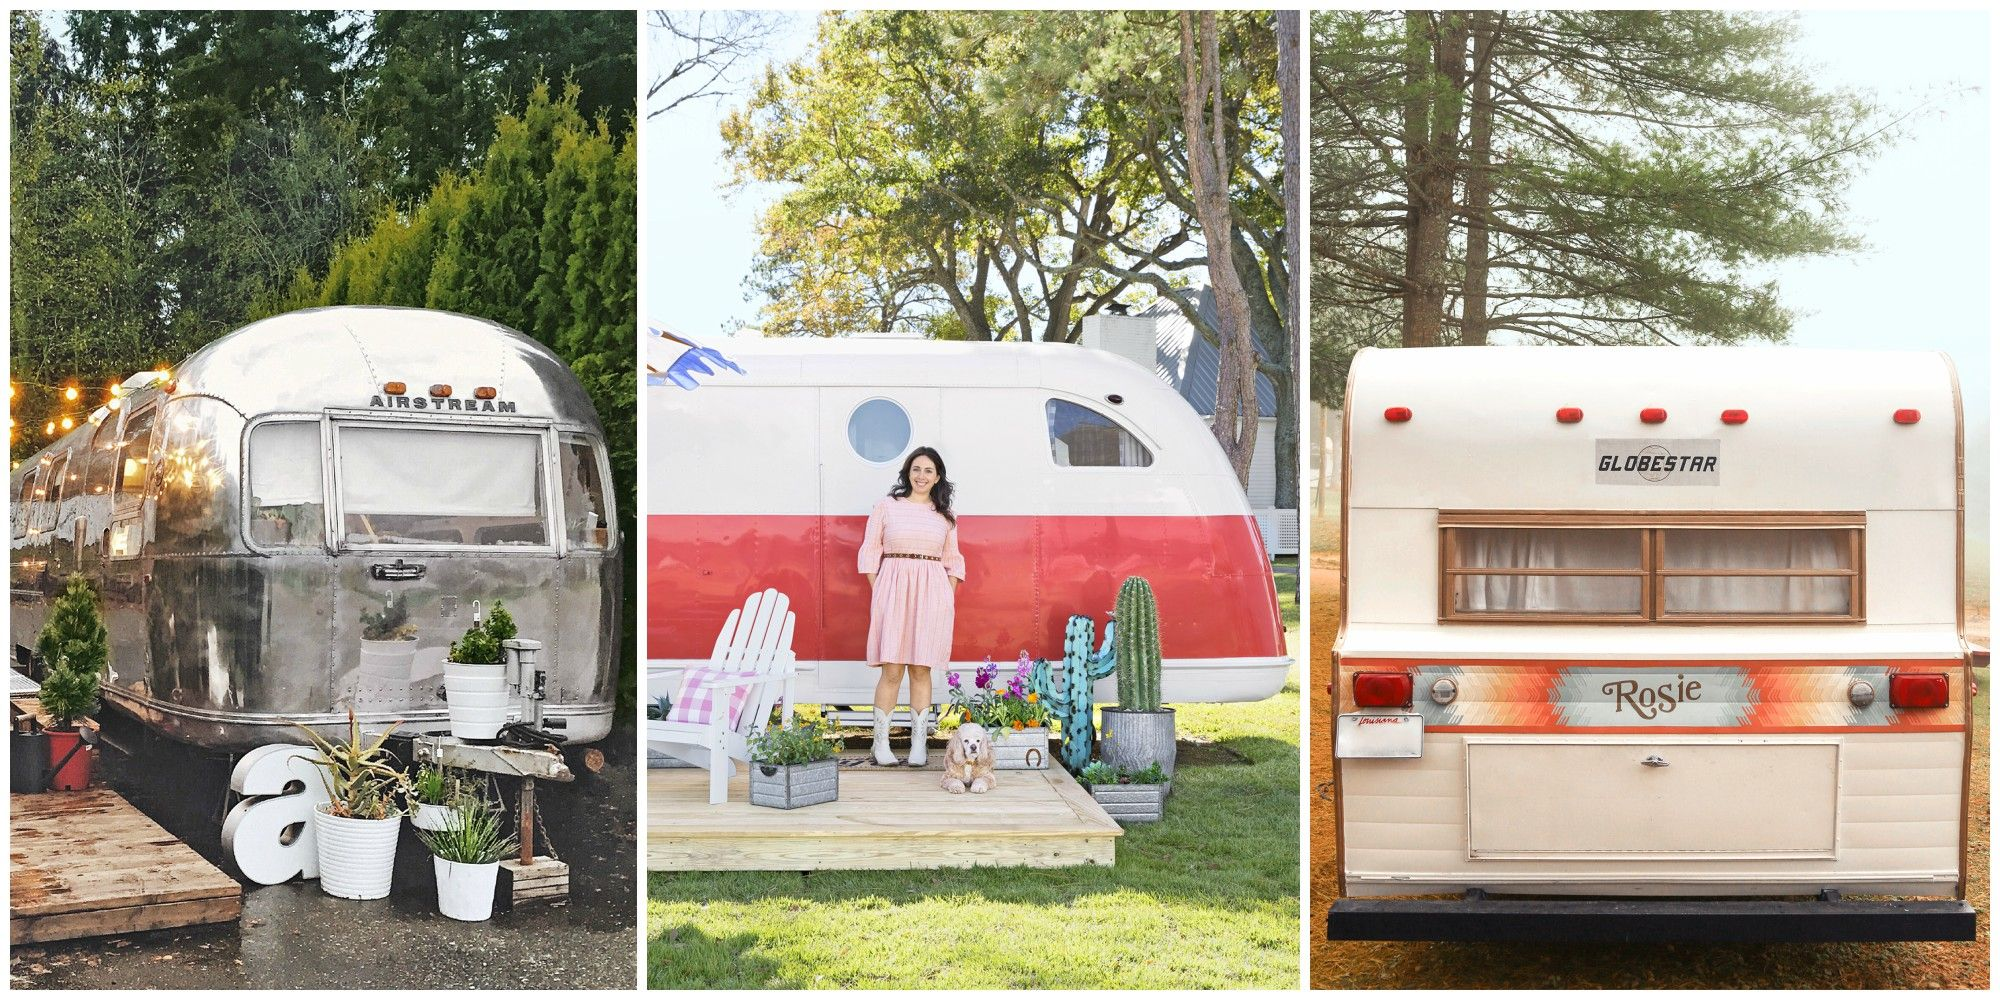 These Cute RV and Camper Decorating Ideas Will Give You a Serious Case of Yonderlust